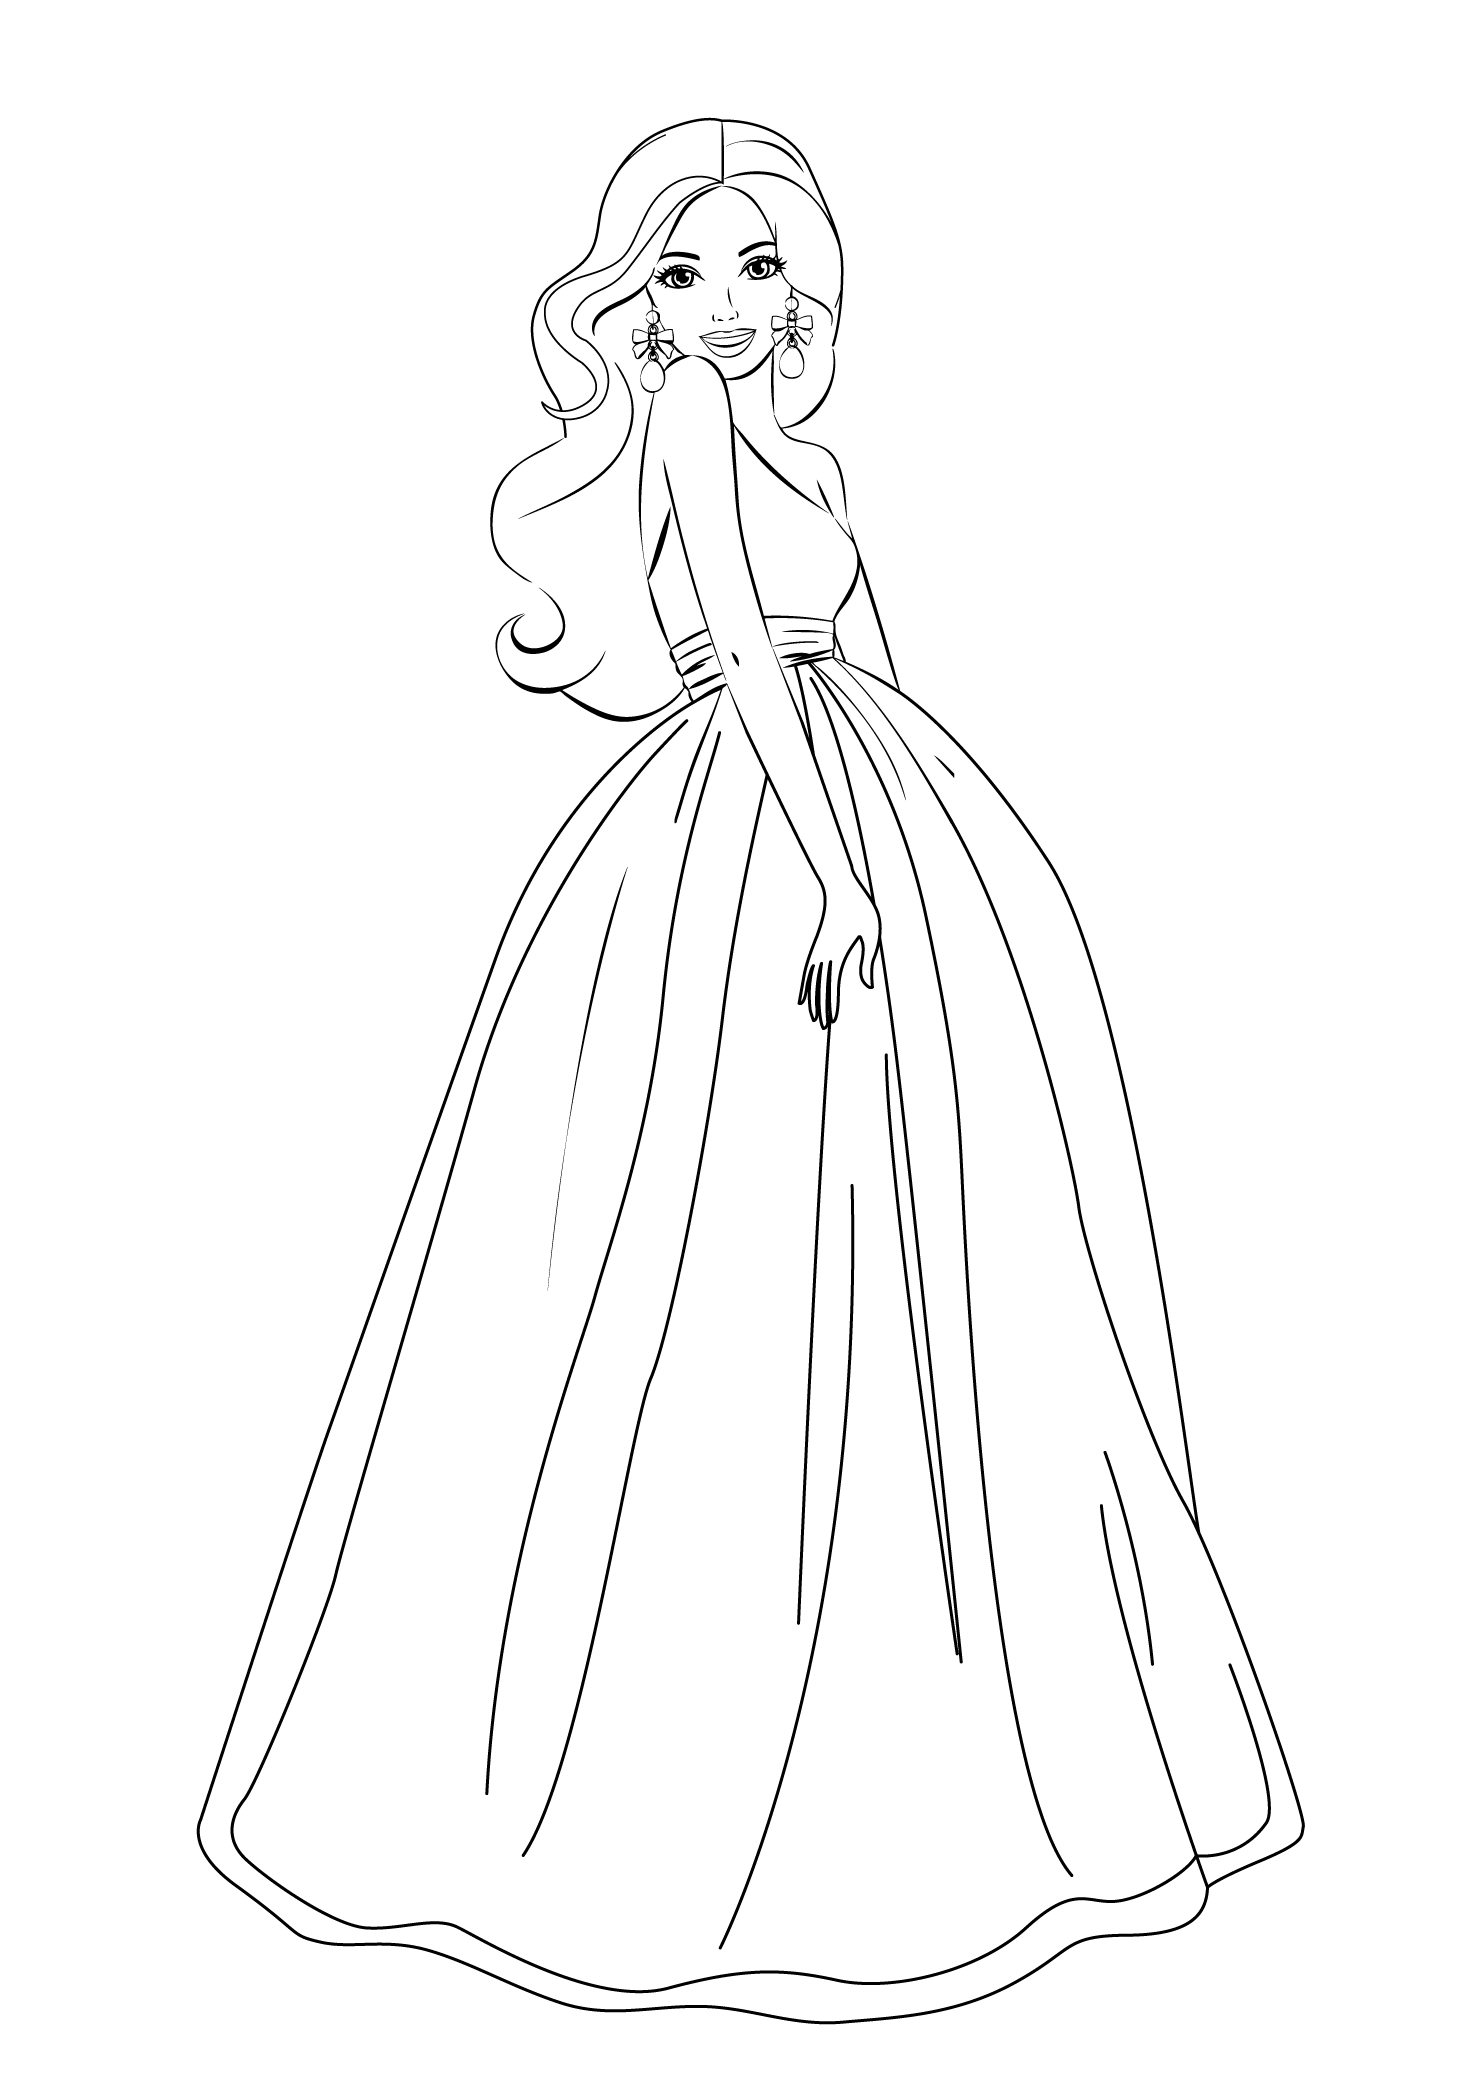 Barbie Coloring Pages For Girls Free Printable Barbie Coloring Pages Barbie Coloring Princess Coloring Pages